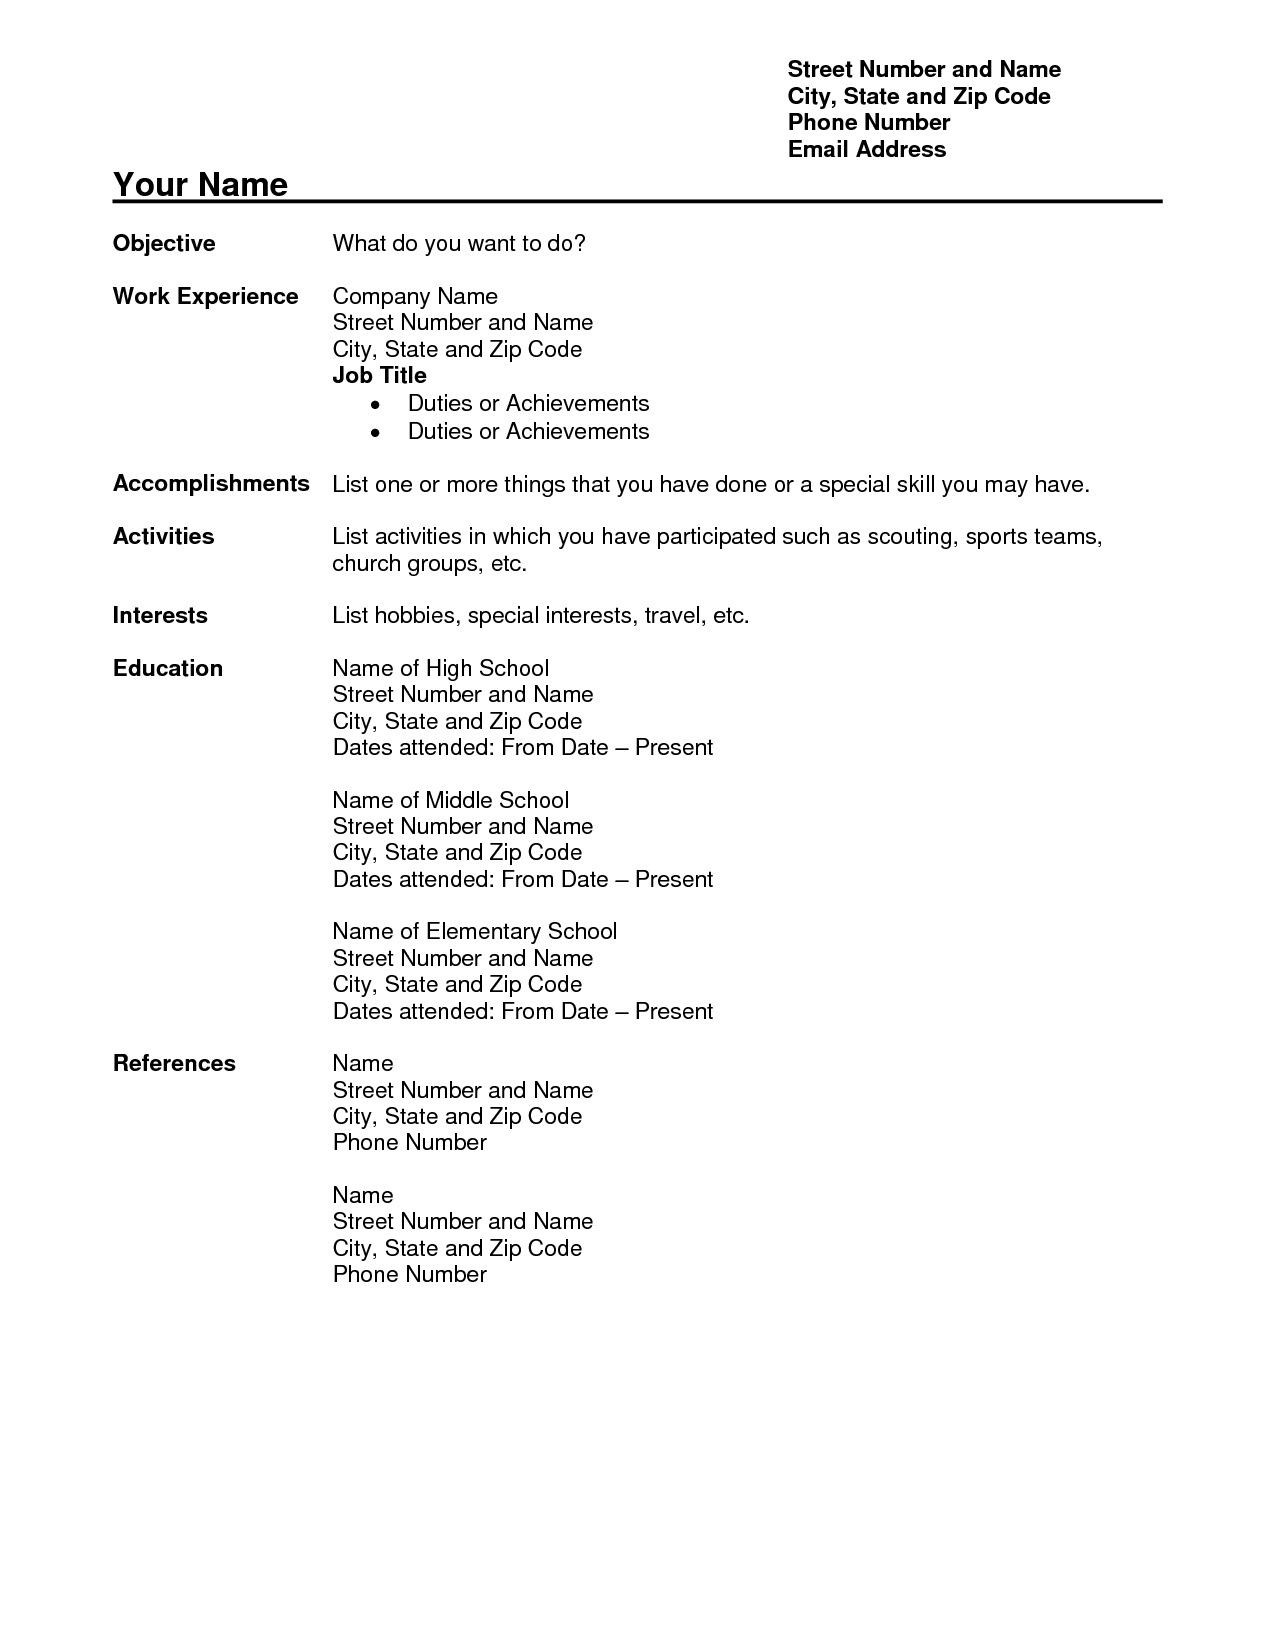 free teacher resume templates download free teacher resume templates download free teacher resume templates microsoft - Free Resume Download Software